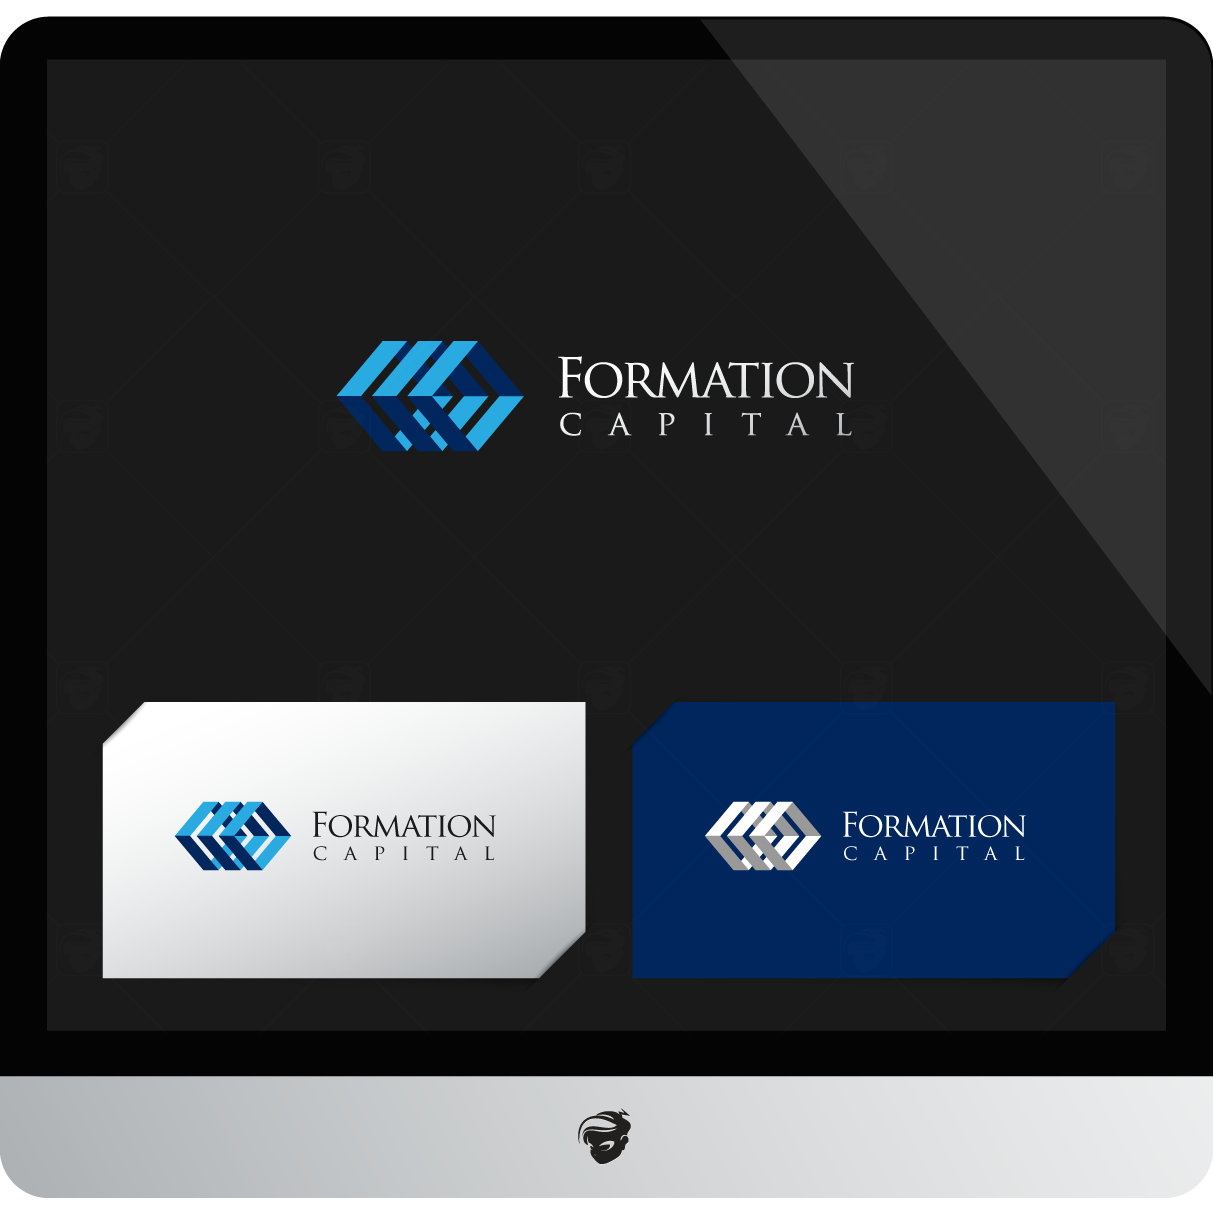 Logo Design by zesthar - Entry No. 228 in the Logo Design Contest Inspiring Logo Design for Formation Capital.